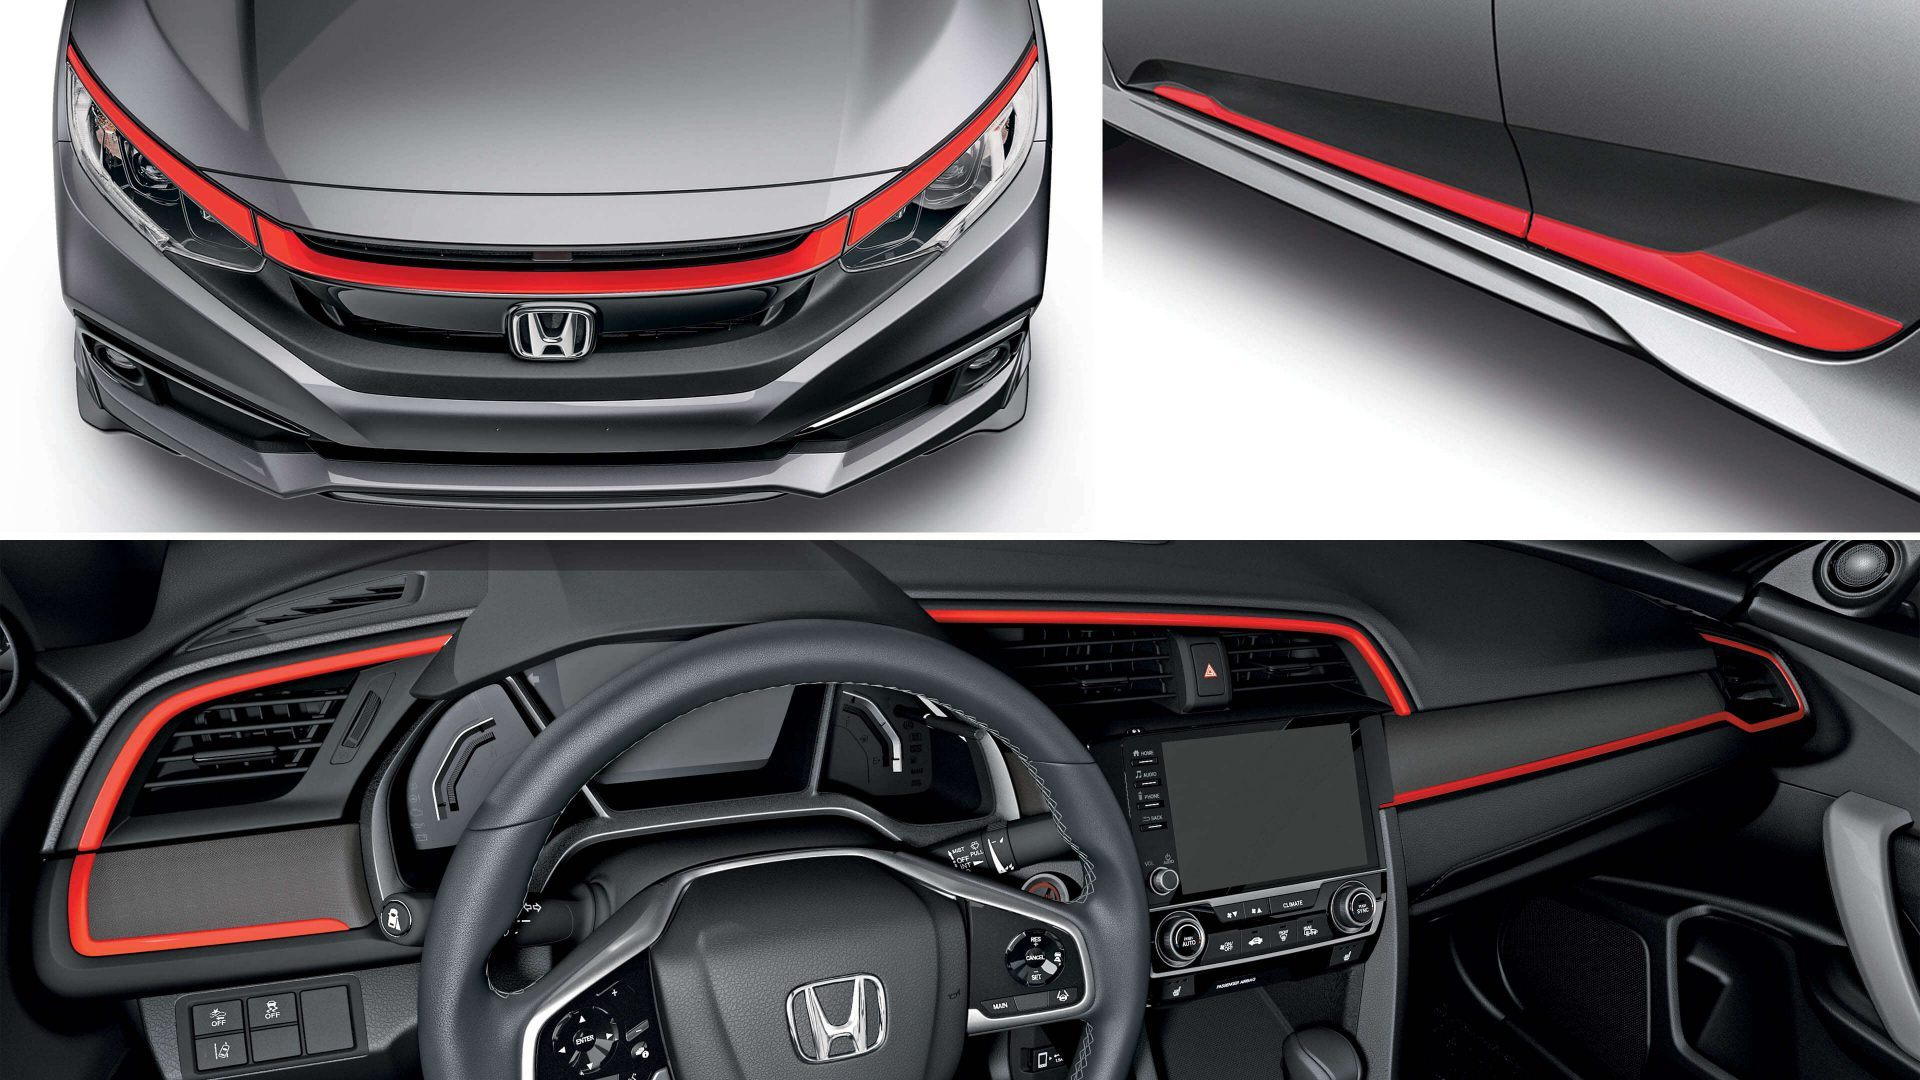 2019 Civic Accessories